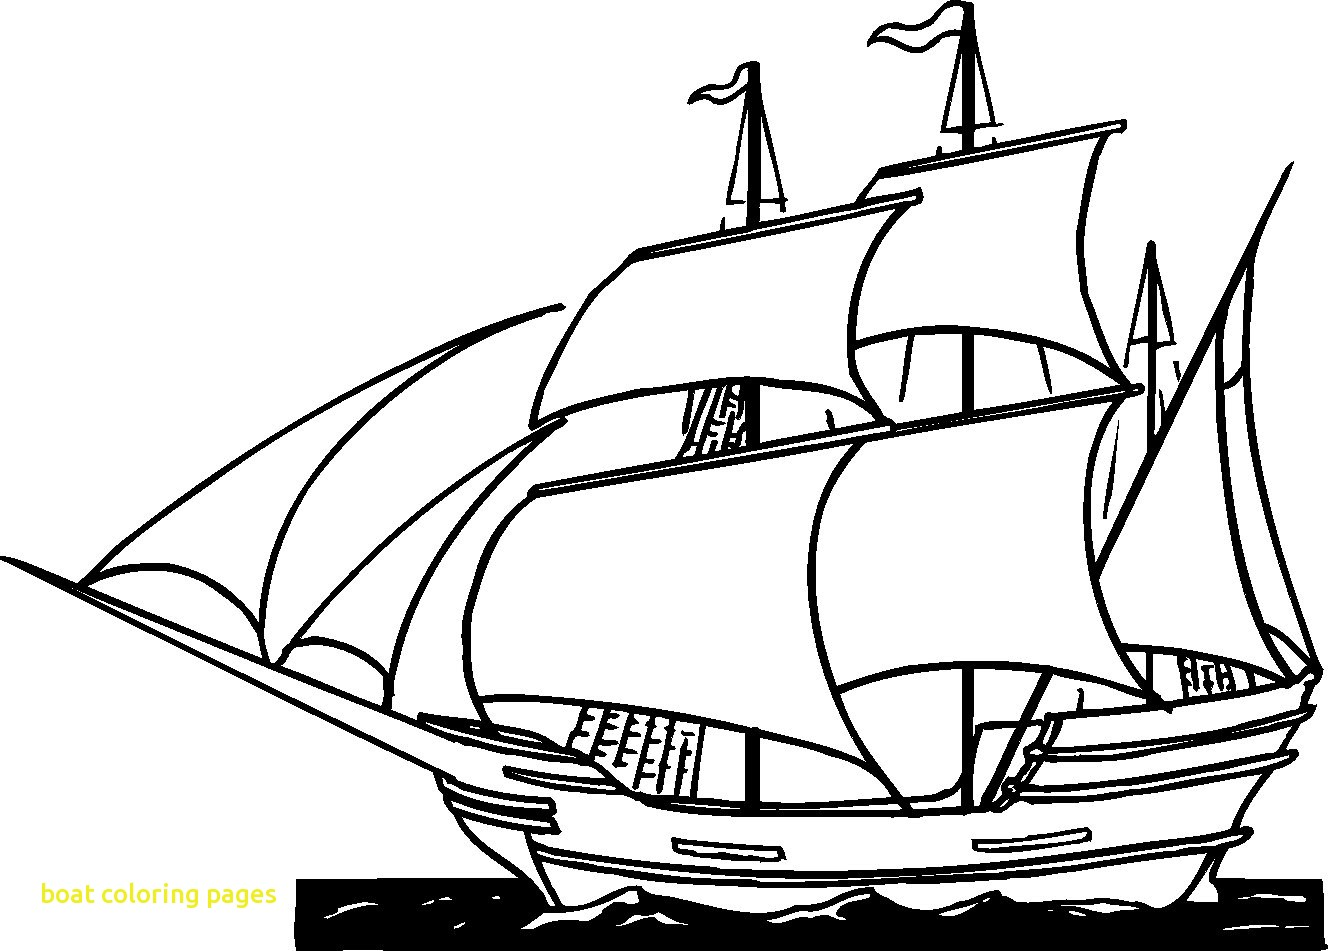 1328x951 Boat Coloring Pages With Drawn Sailing Boat Coloring Page Pencil